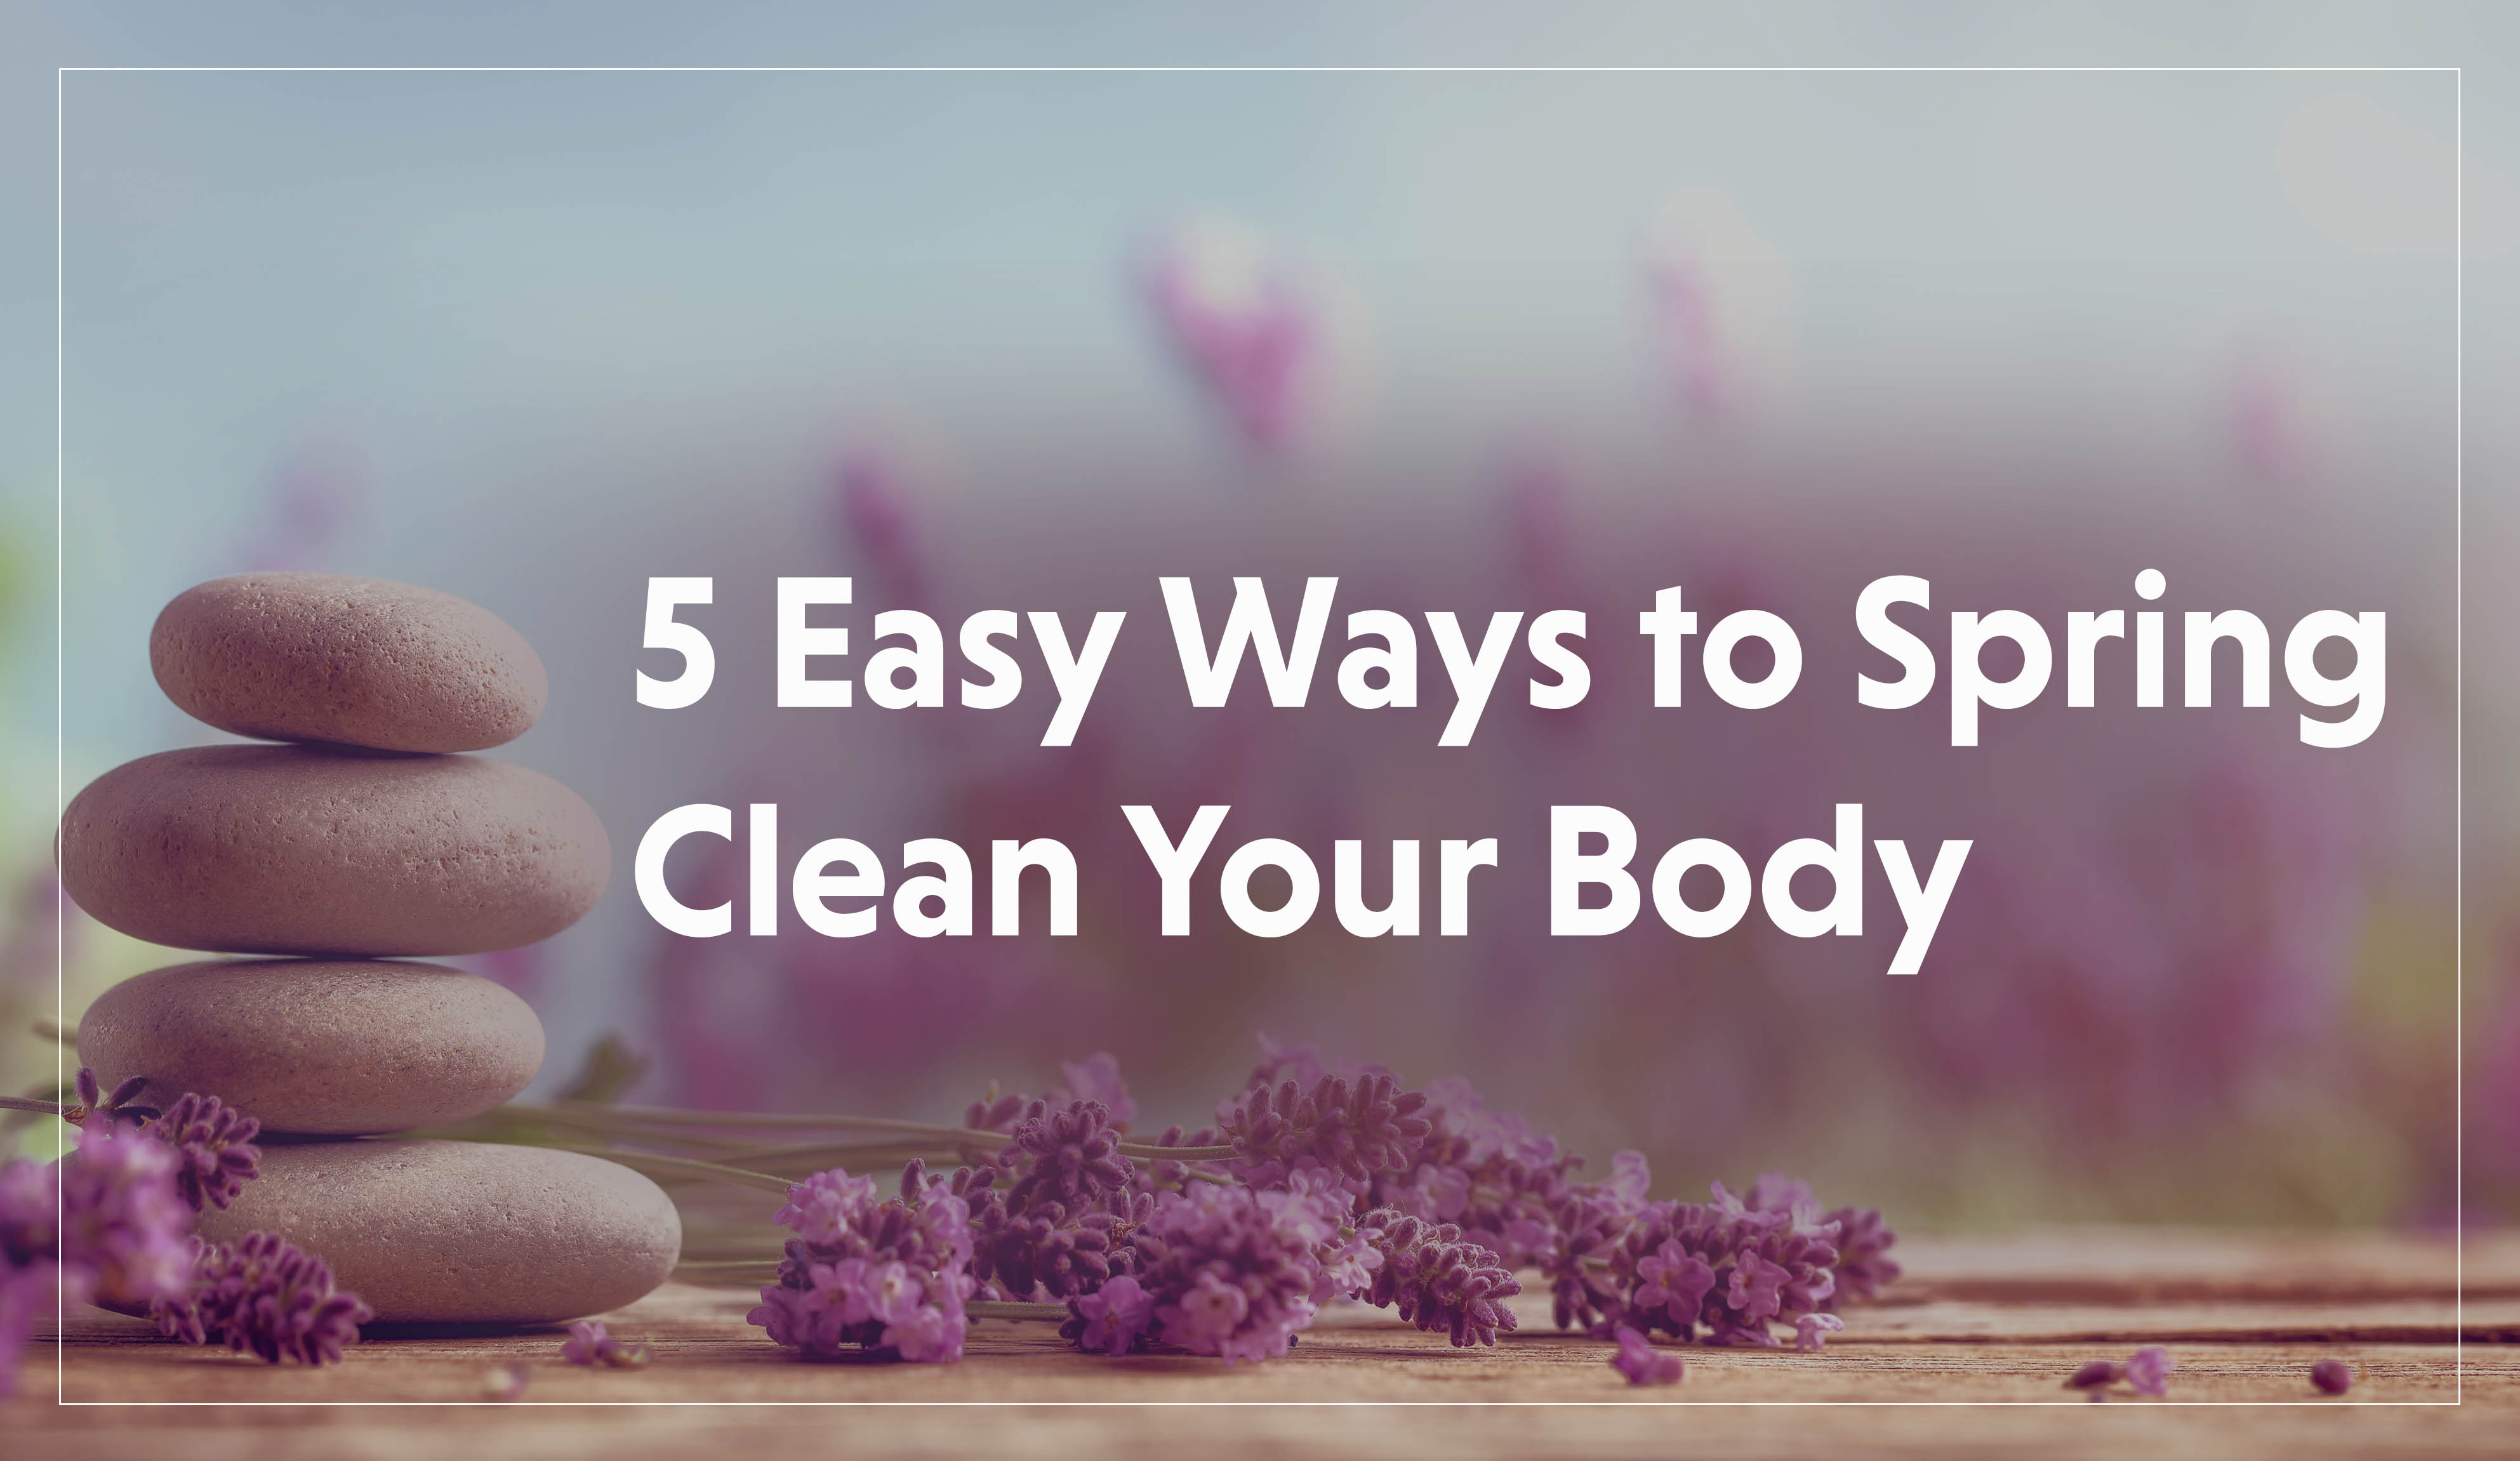 5 Ways to Spring Clean Your Body